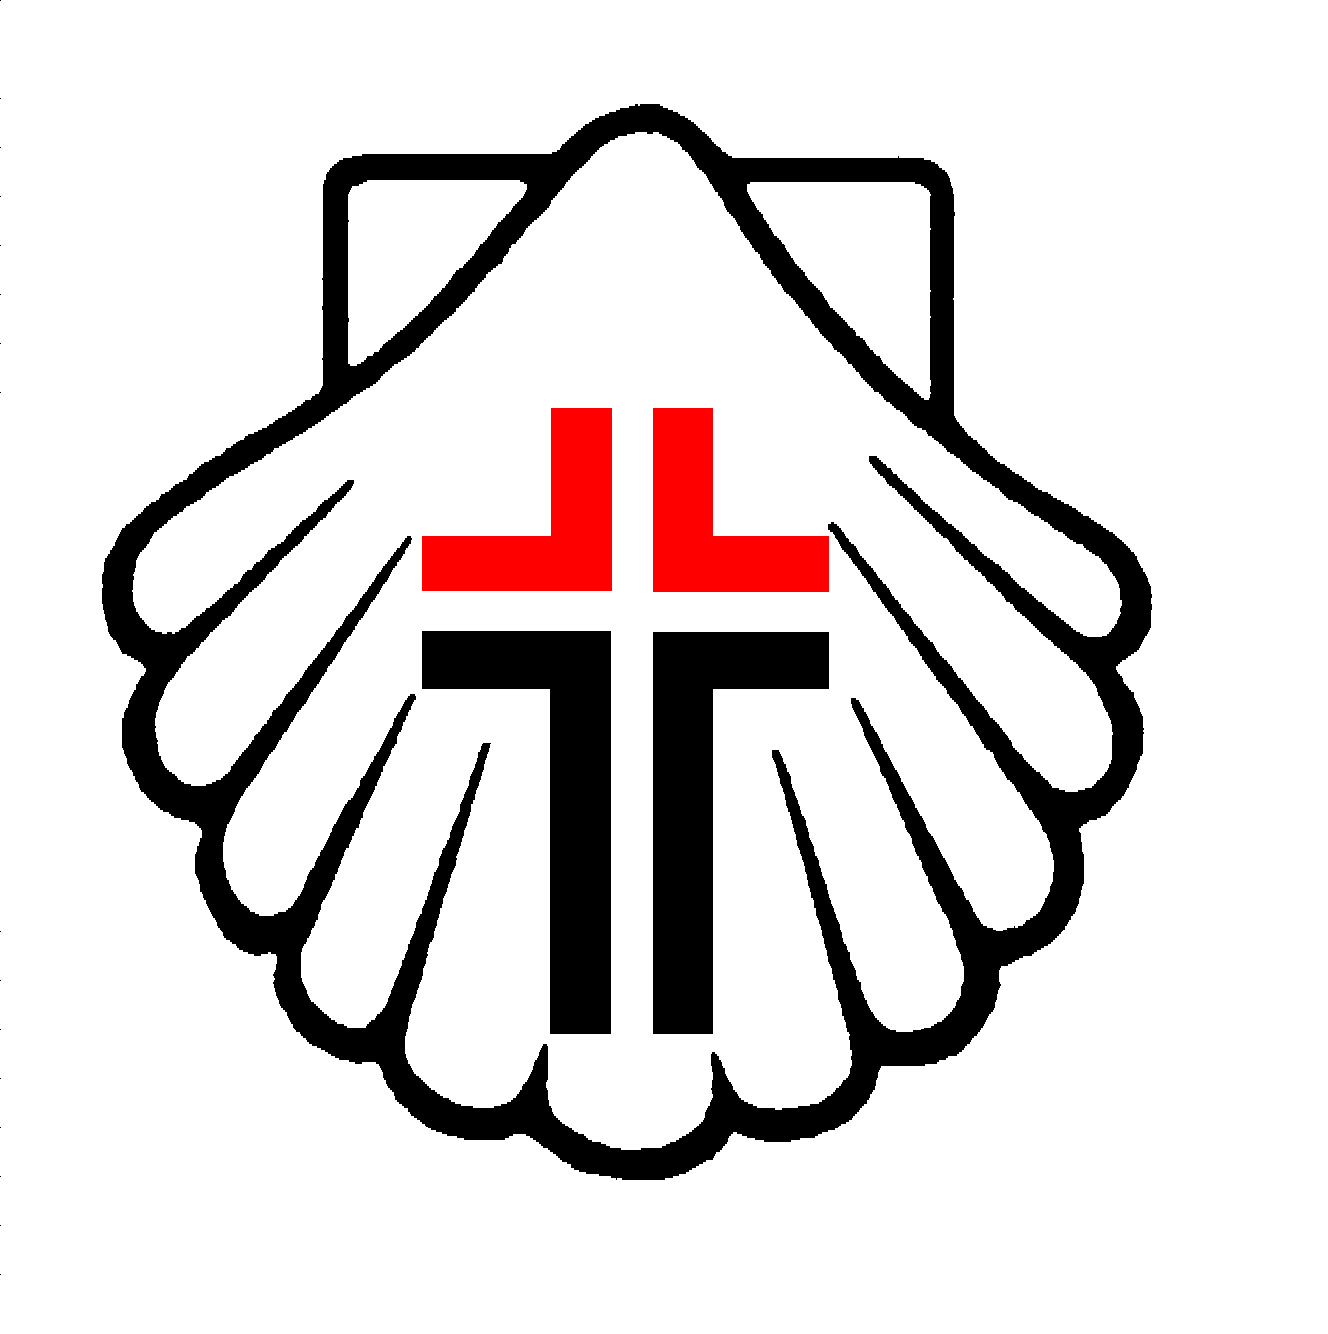 The Methodist Church of Southern Africa logo